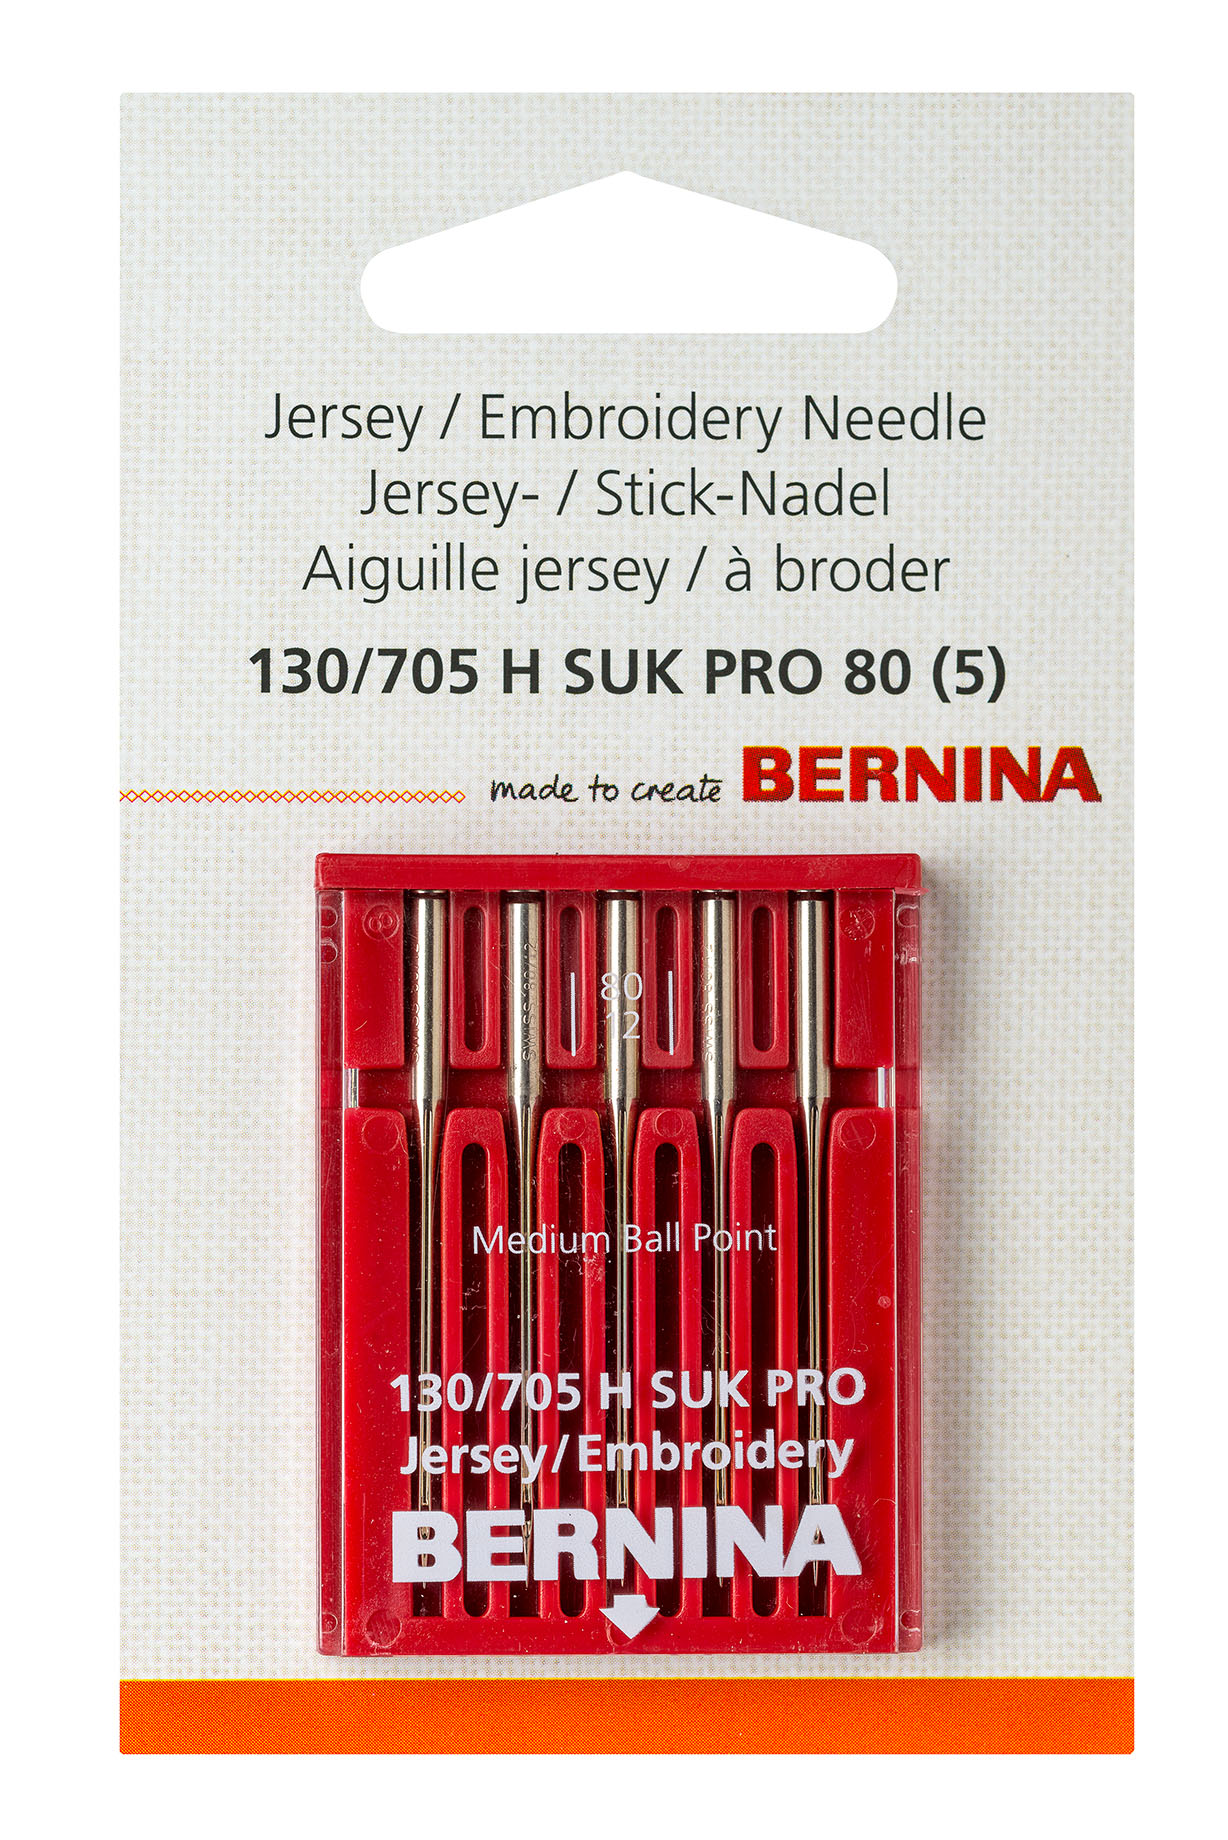 Jersey / embroidery PRO needle